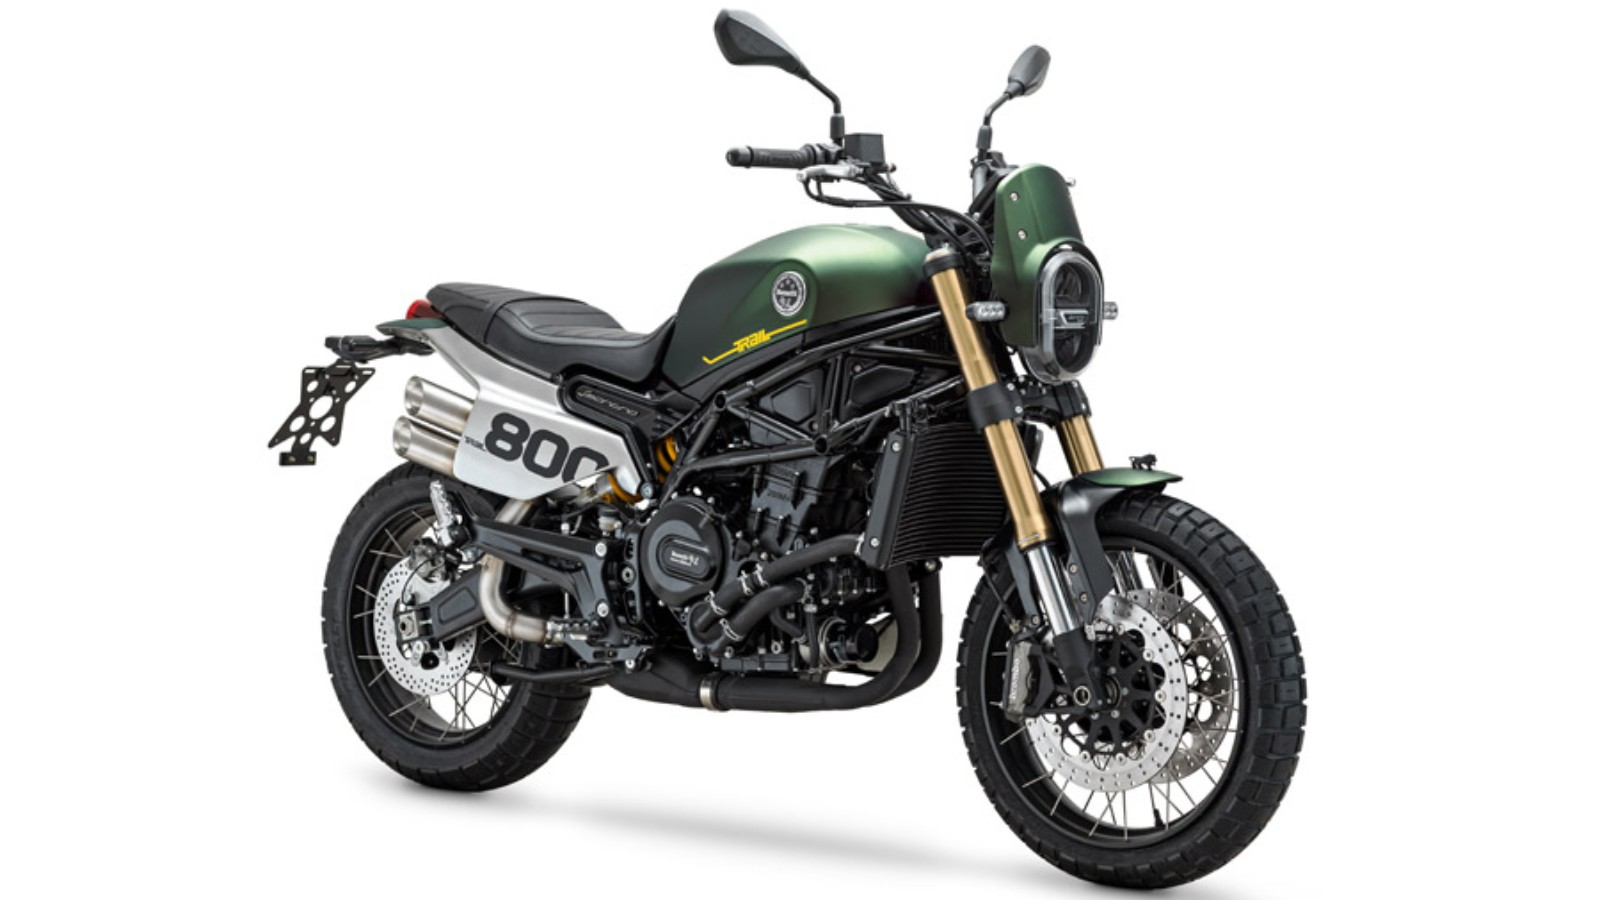 Astonishing The New Benelli Leoncino 800 Gets A Trail Version Motoroids Ibusinesslaw Wood Chair Design Ideas Ibusinesslaworg